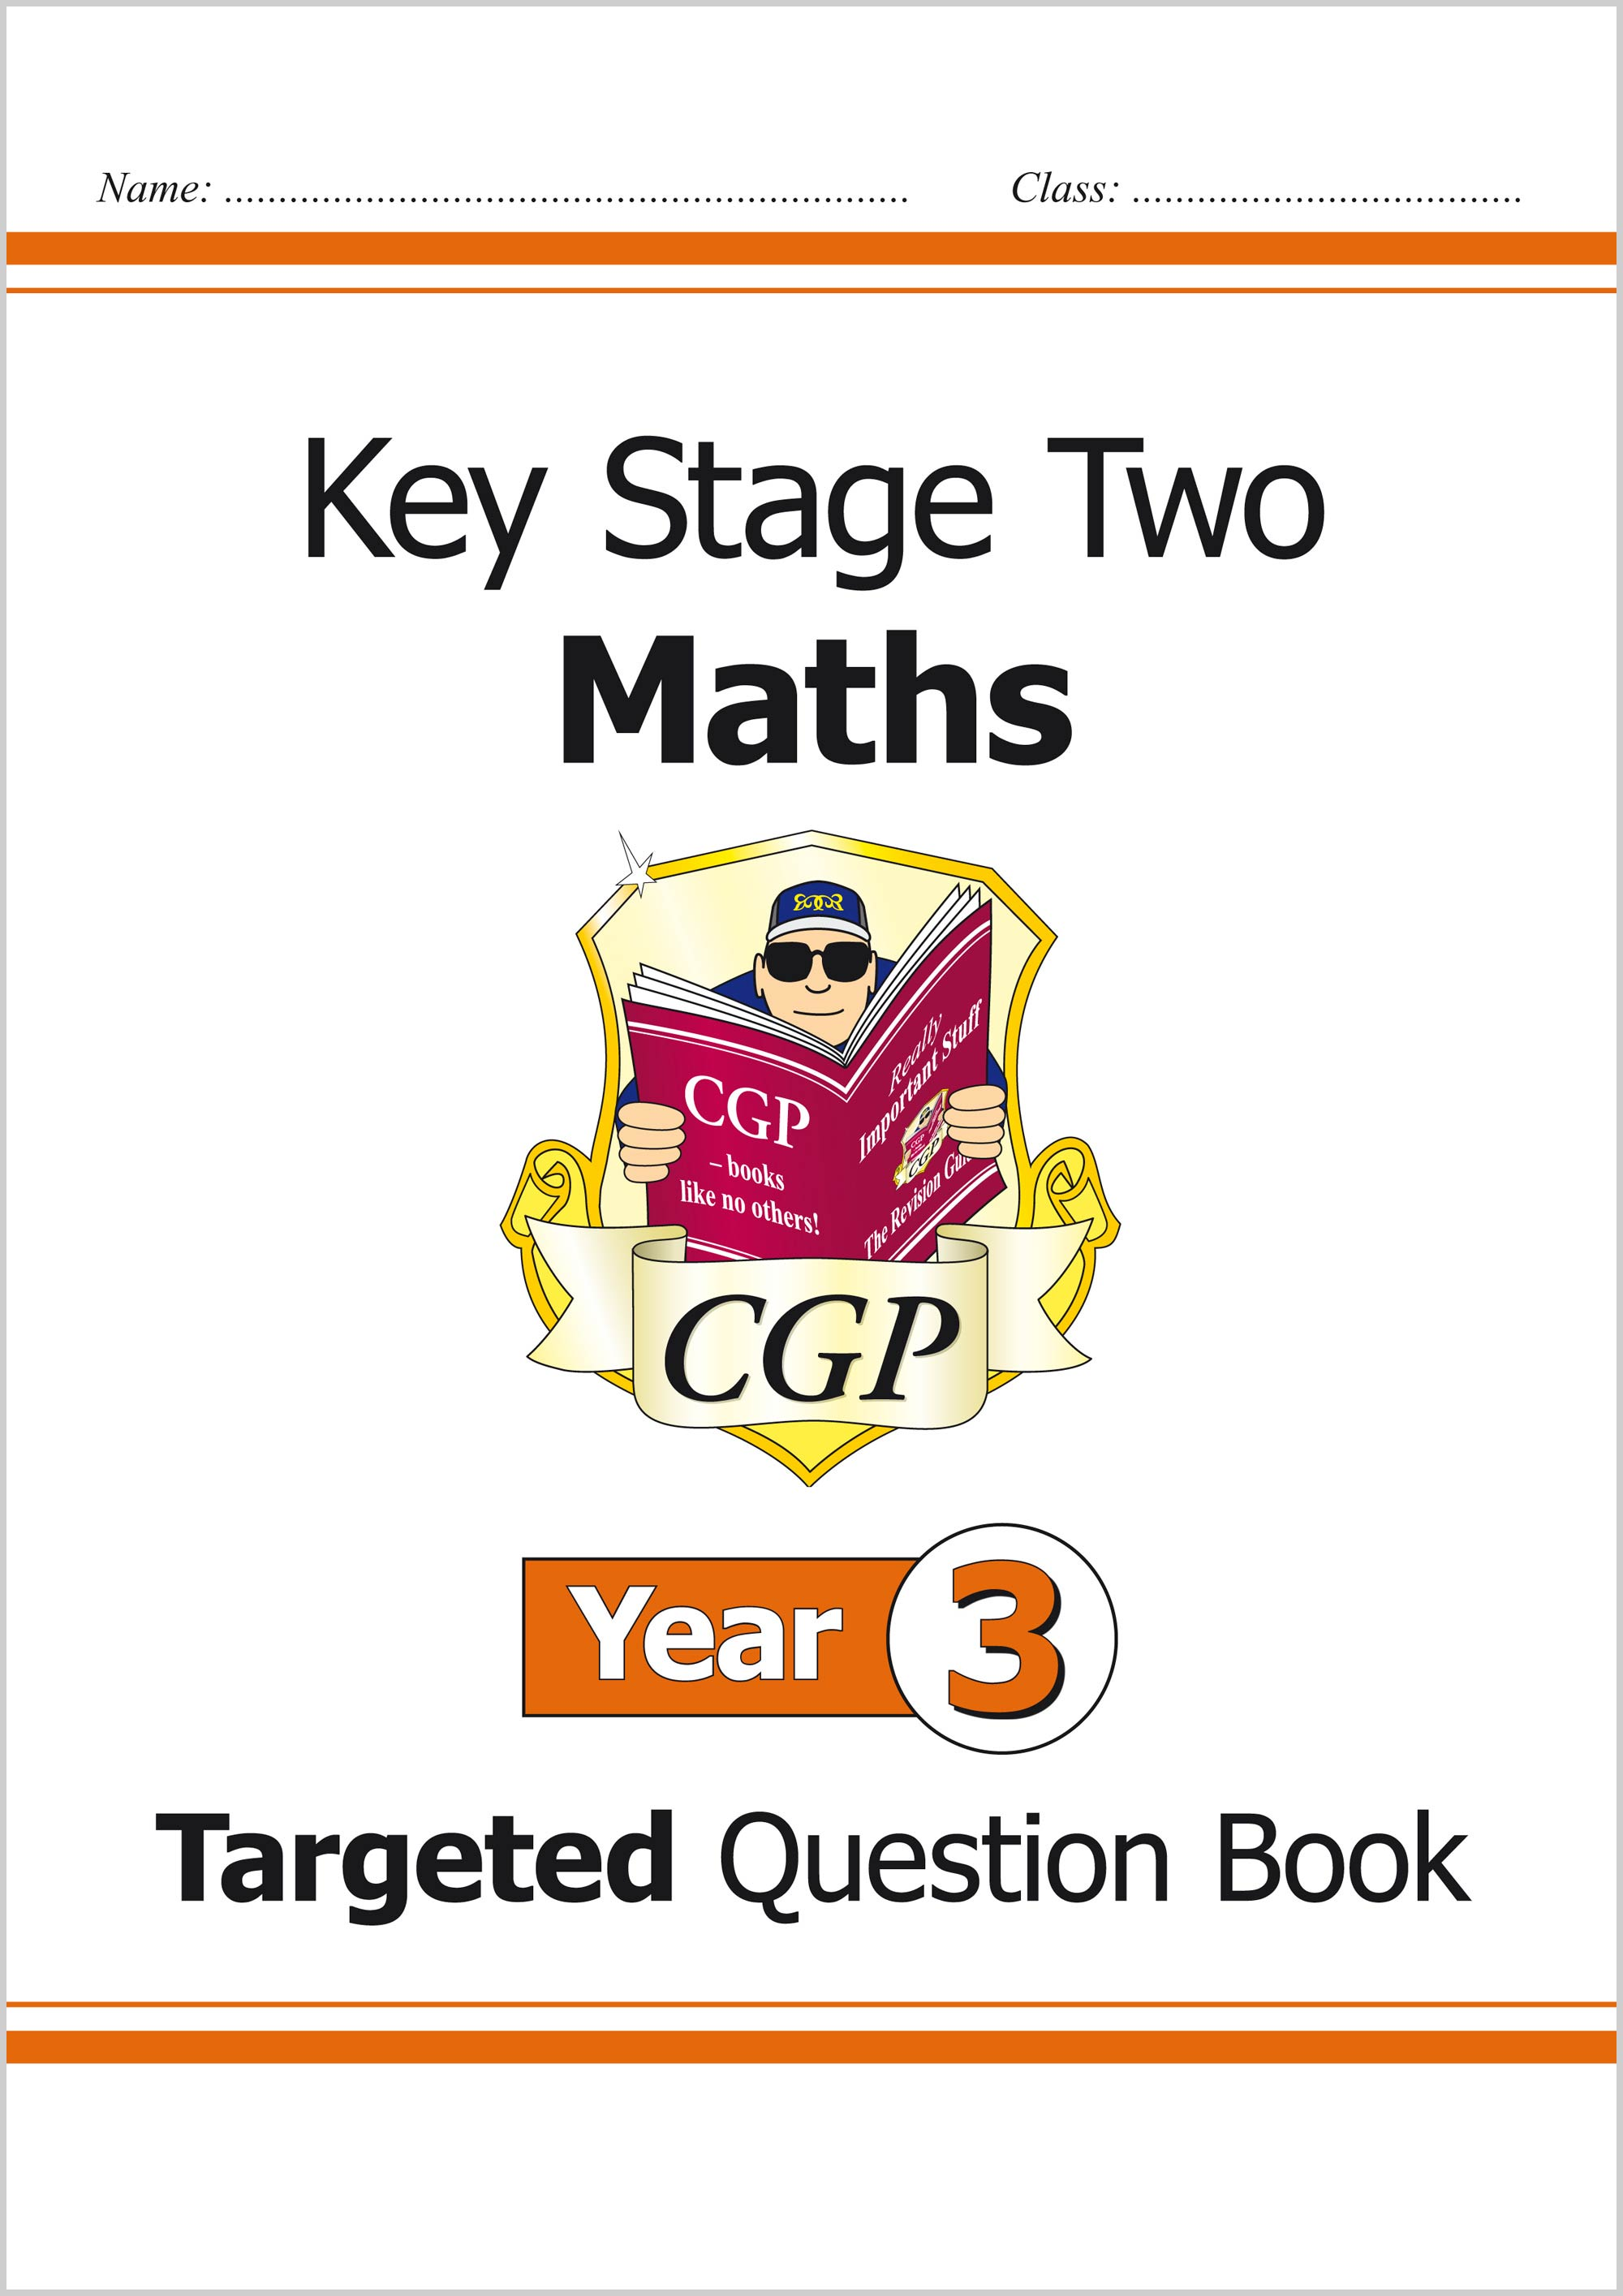 M3Q23 - KS2 Maths Targeted Question Book - Year 3